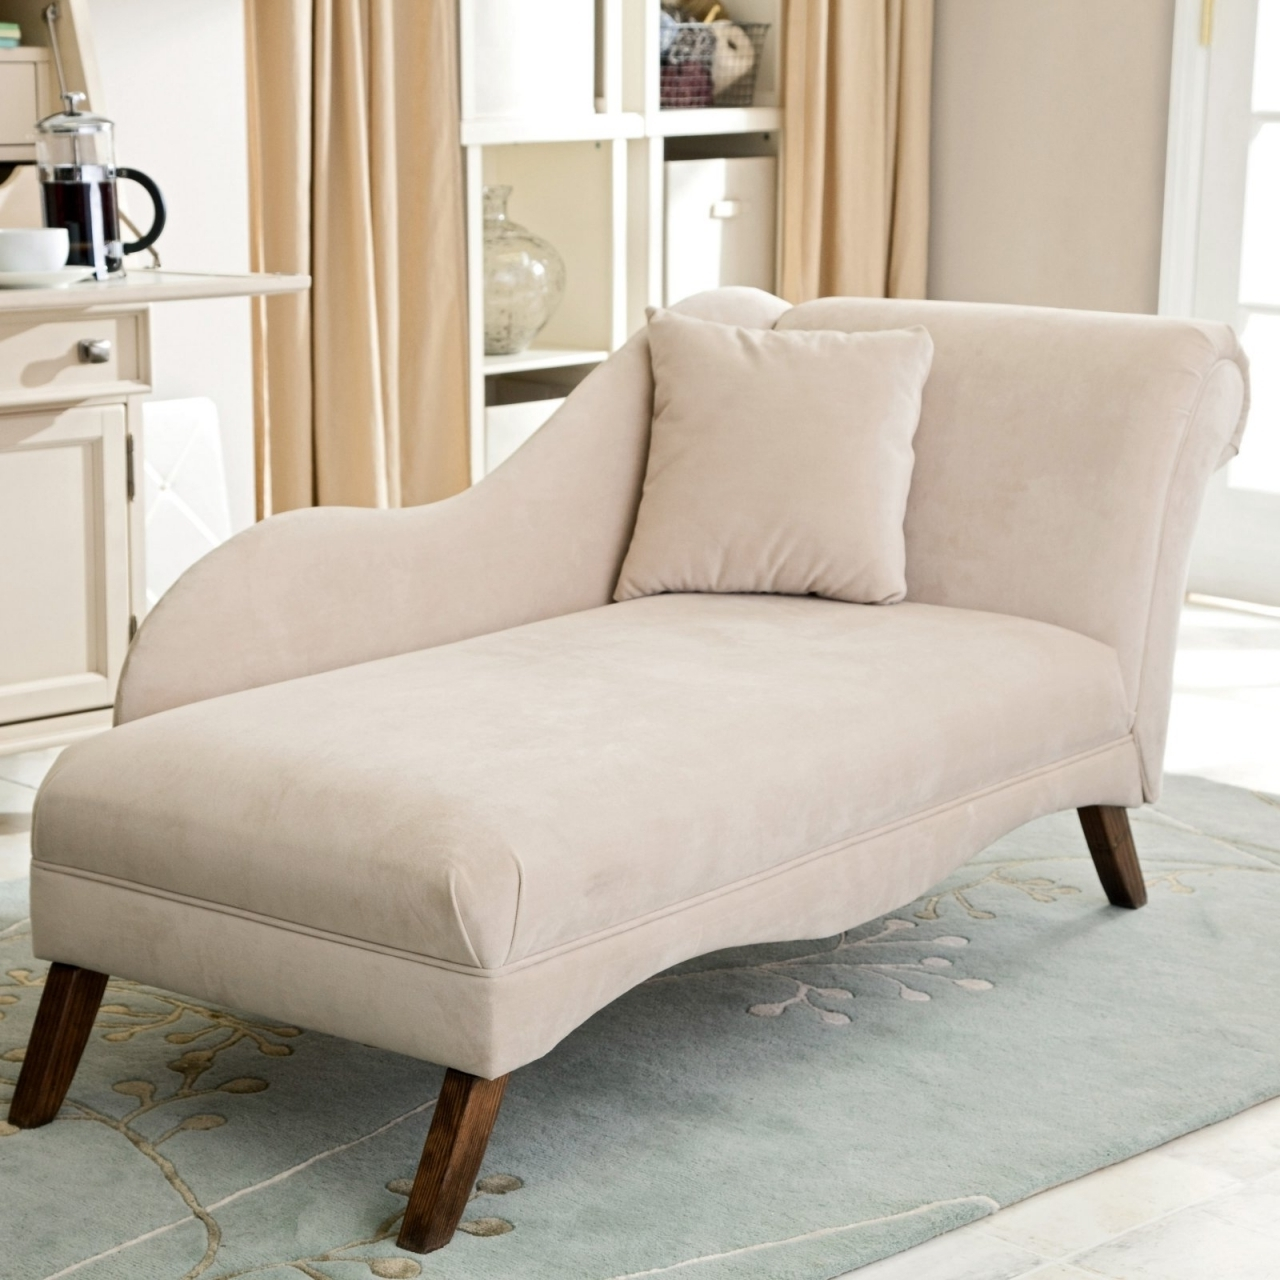 Most Recently Released High Quality Chaise Lounge Chairs Pertaining To Great Modern Chaise Lounge Chair With Additional Styles Of Chairs (View 15 of 15)